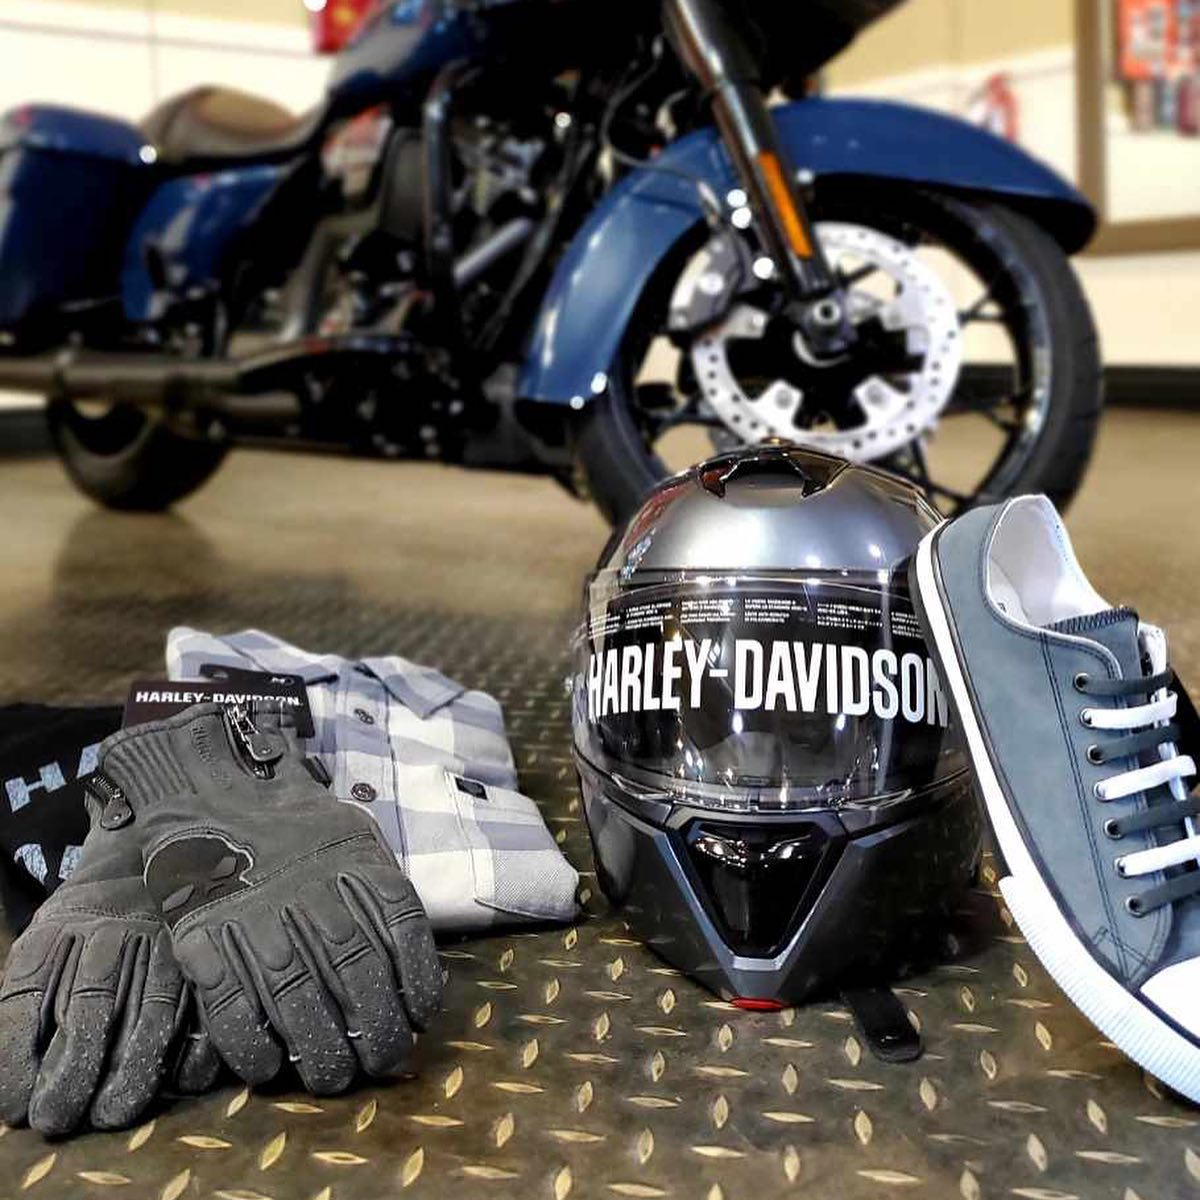 MotorClothes gear at Gasoline Alley Harley-Davidson